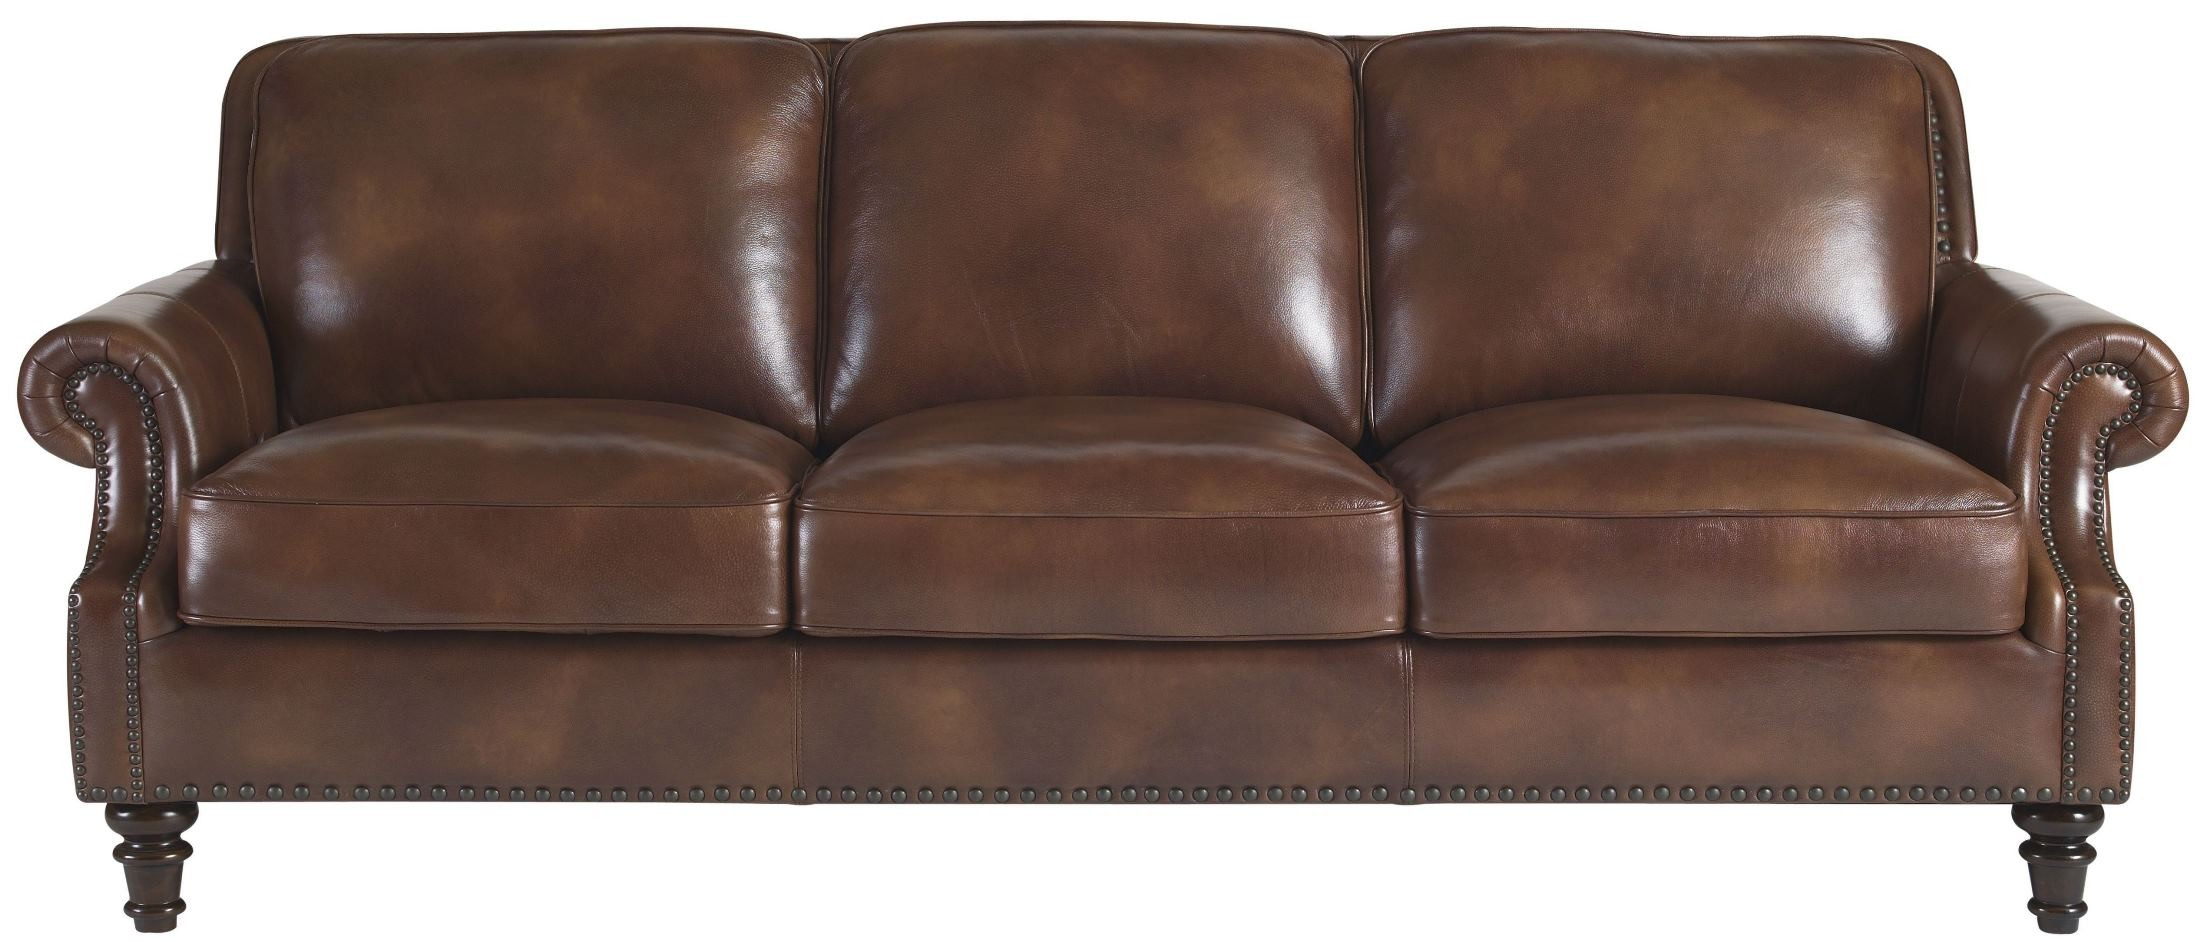 Bentley Rustic Sauvage Leather Sofa From Lazzaro Wh 1009